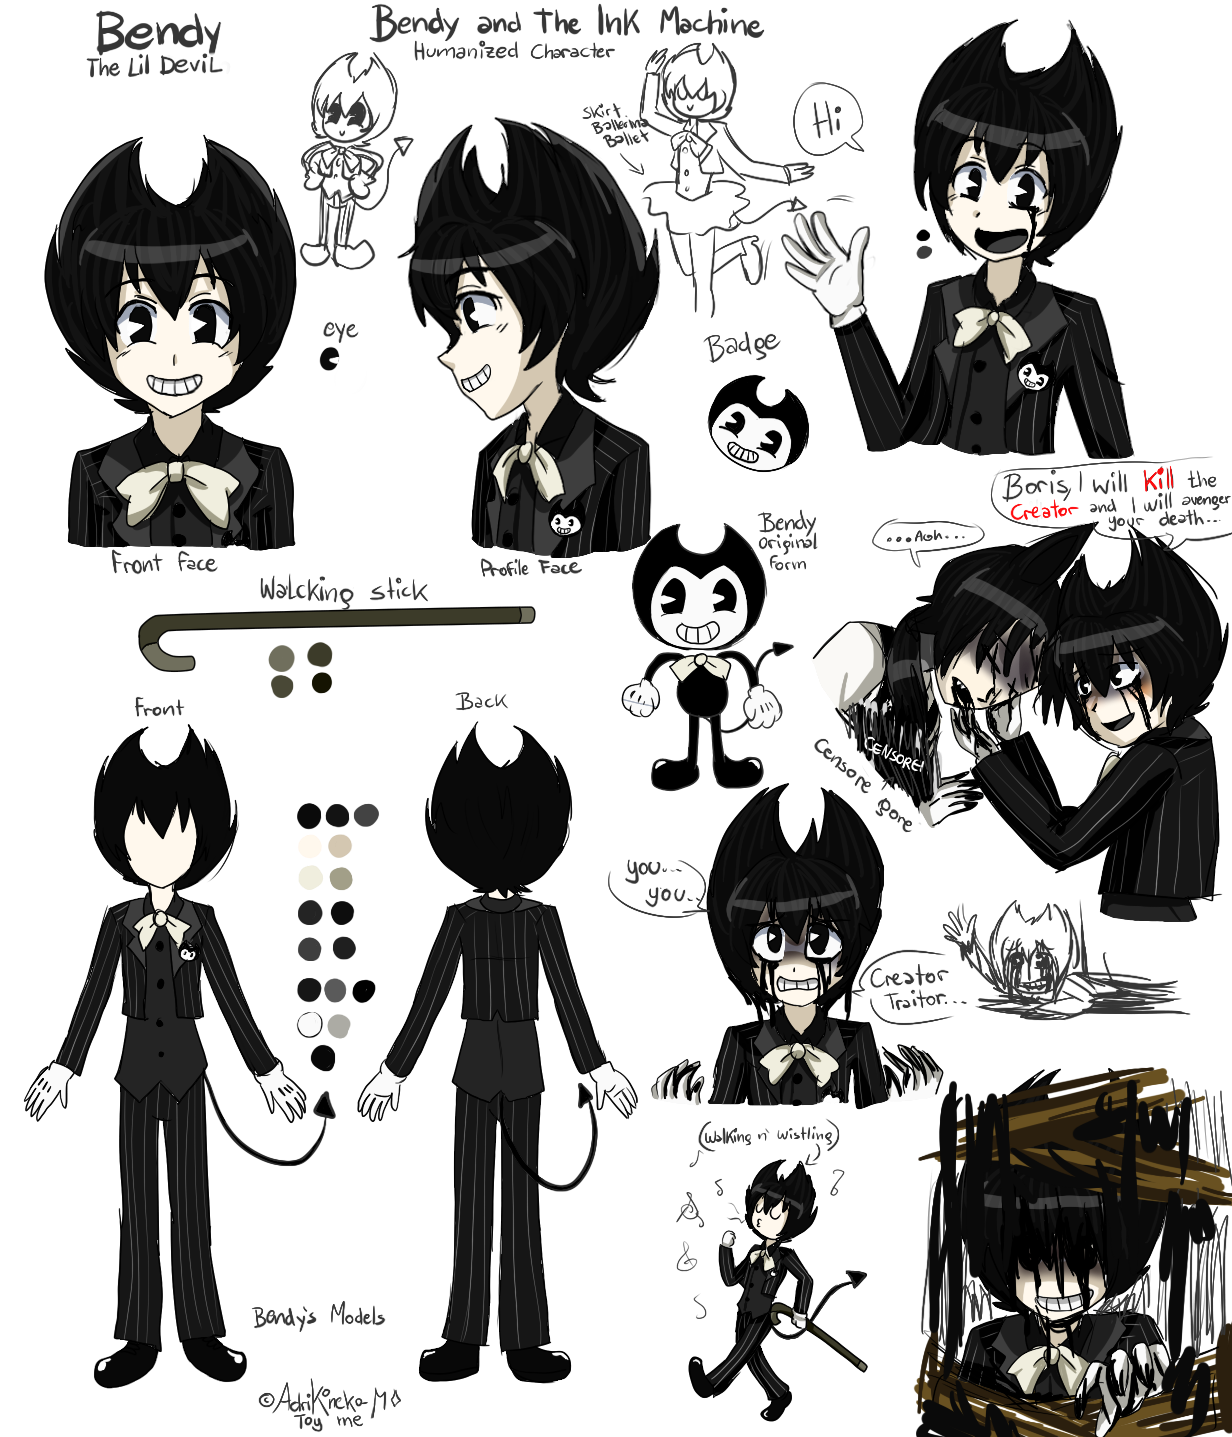 Bendy and the ink. Hot clipart hace